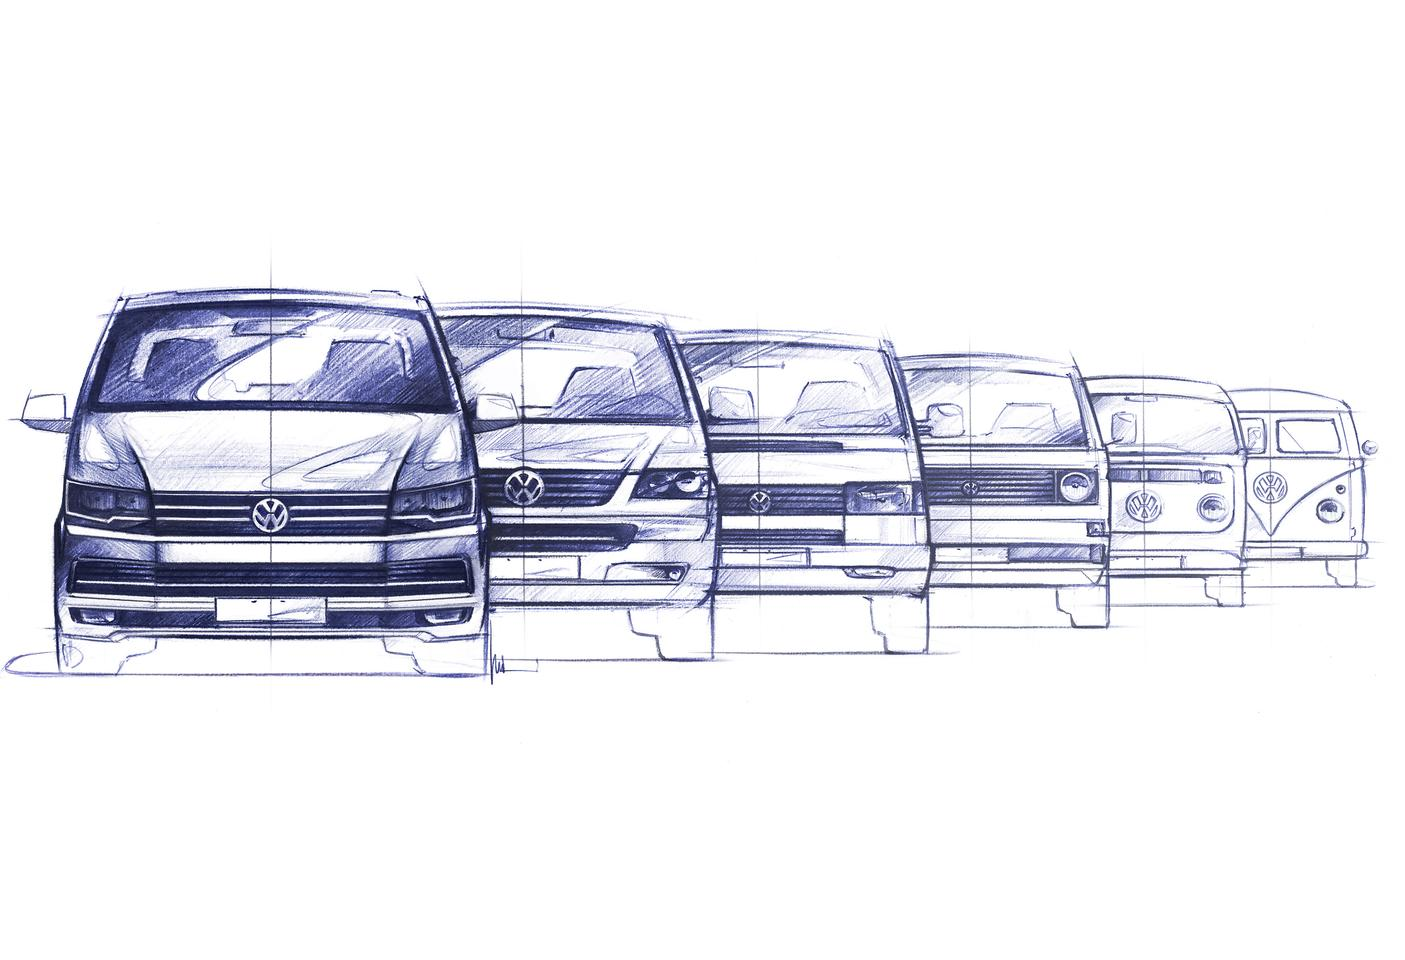 A sketch showing six generations of Transporter design